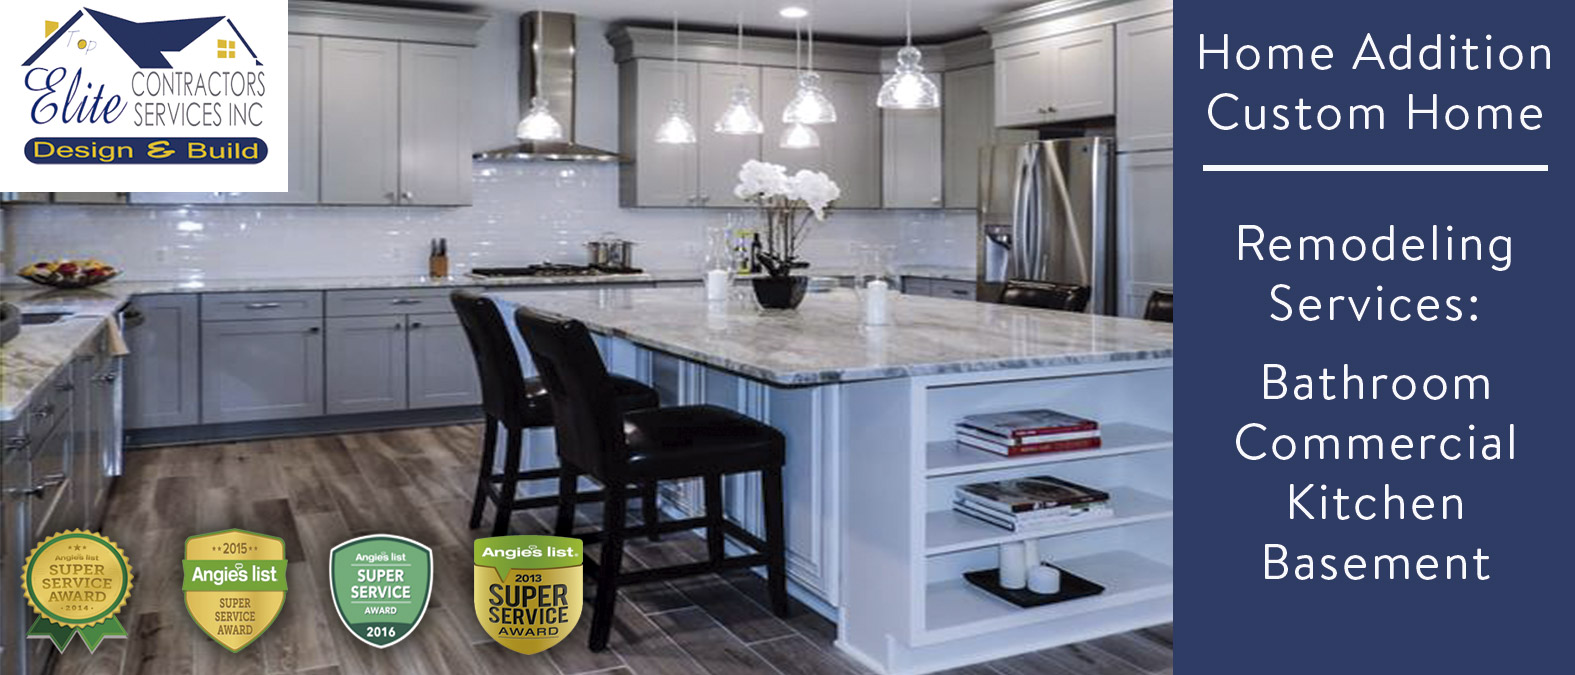 5 Reasons Why You Should Hire a Licensed Contractor for Your Home Remodeling Project